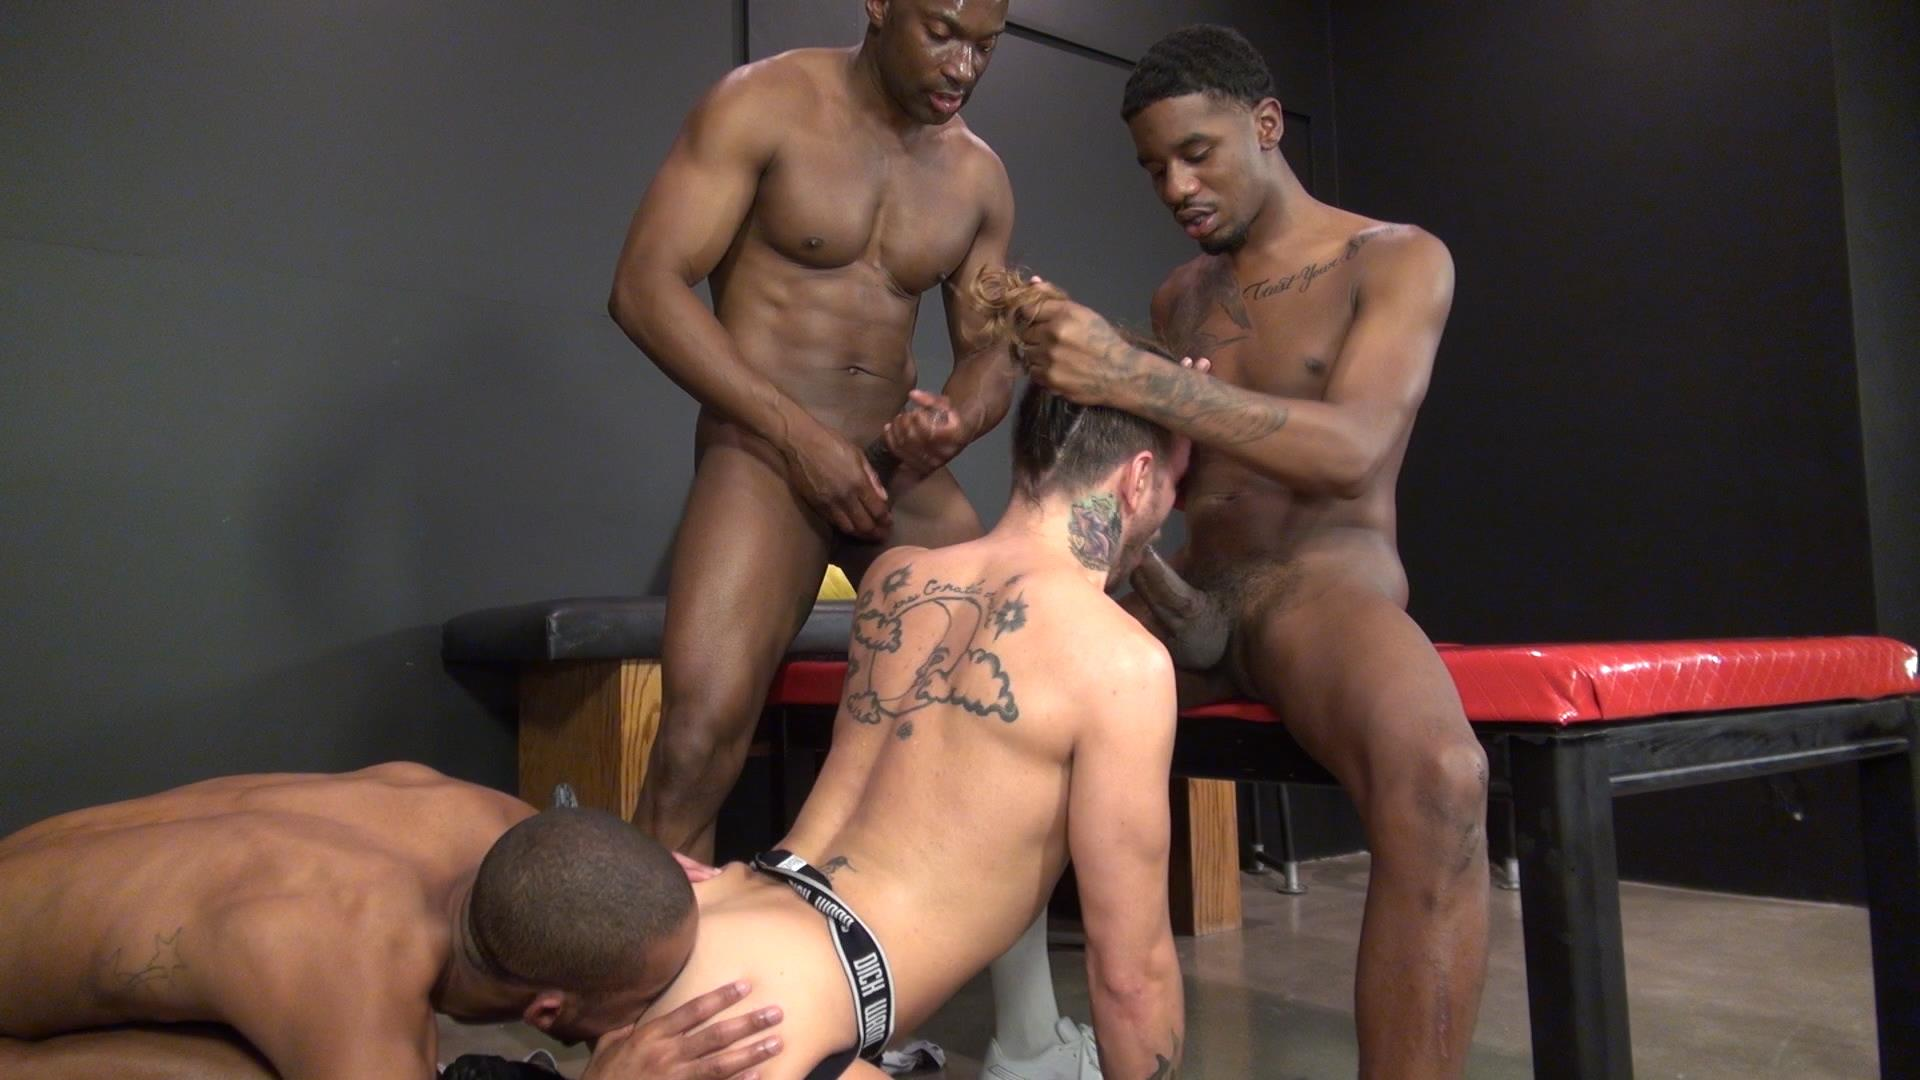 black dig hot black raw men fuck